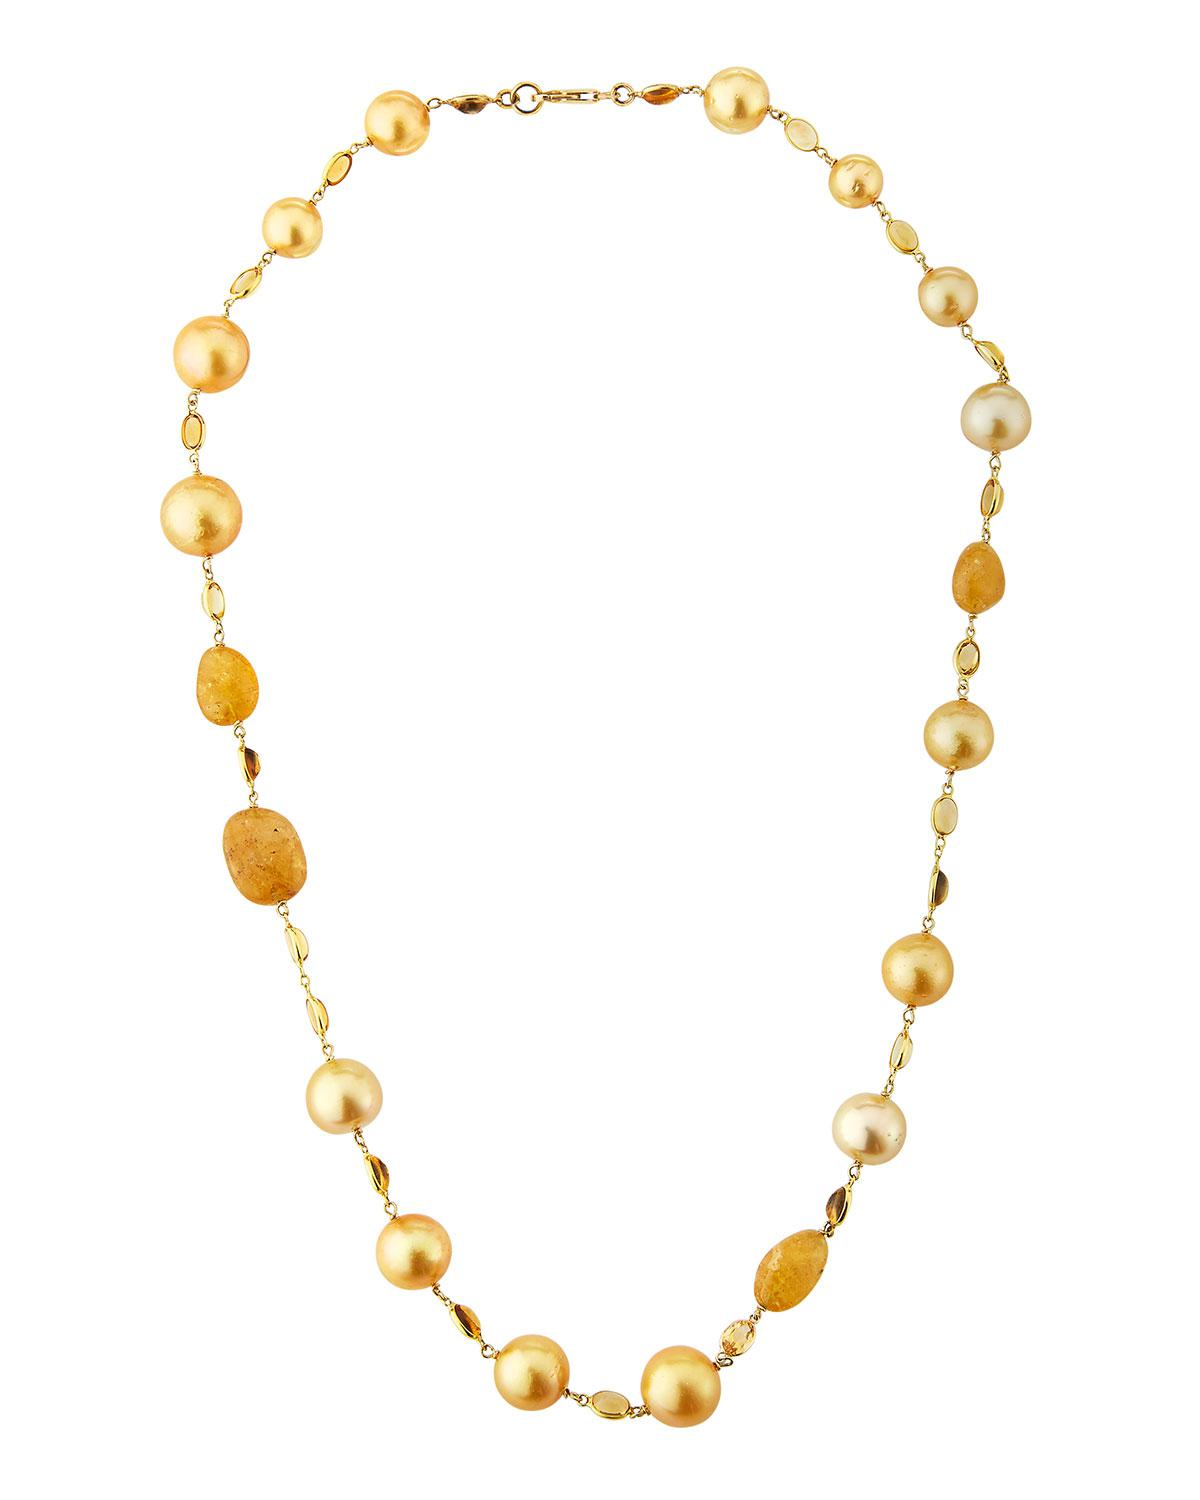 Belpearl 18k South Sea Pearl Station Necklace PA1ropC